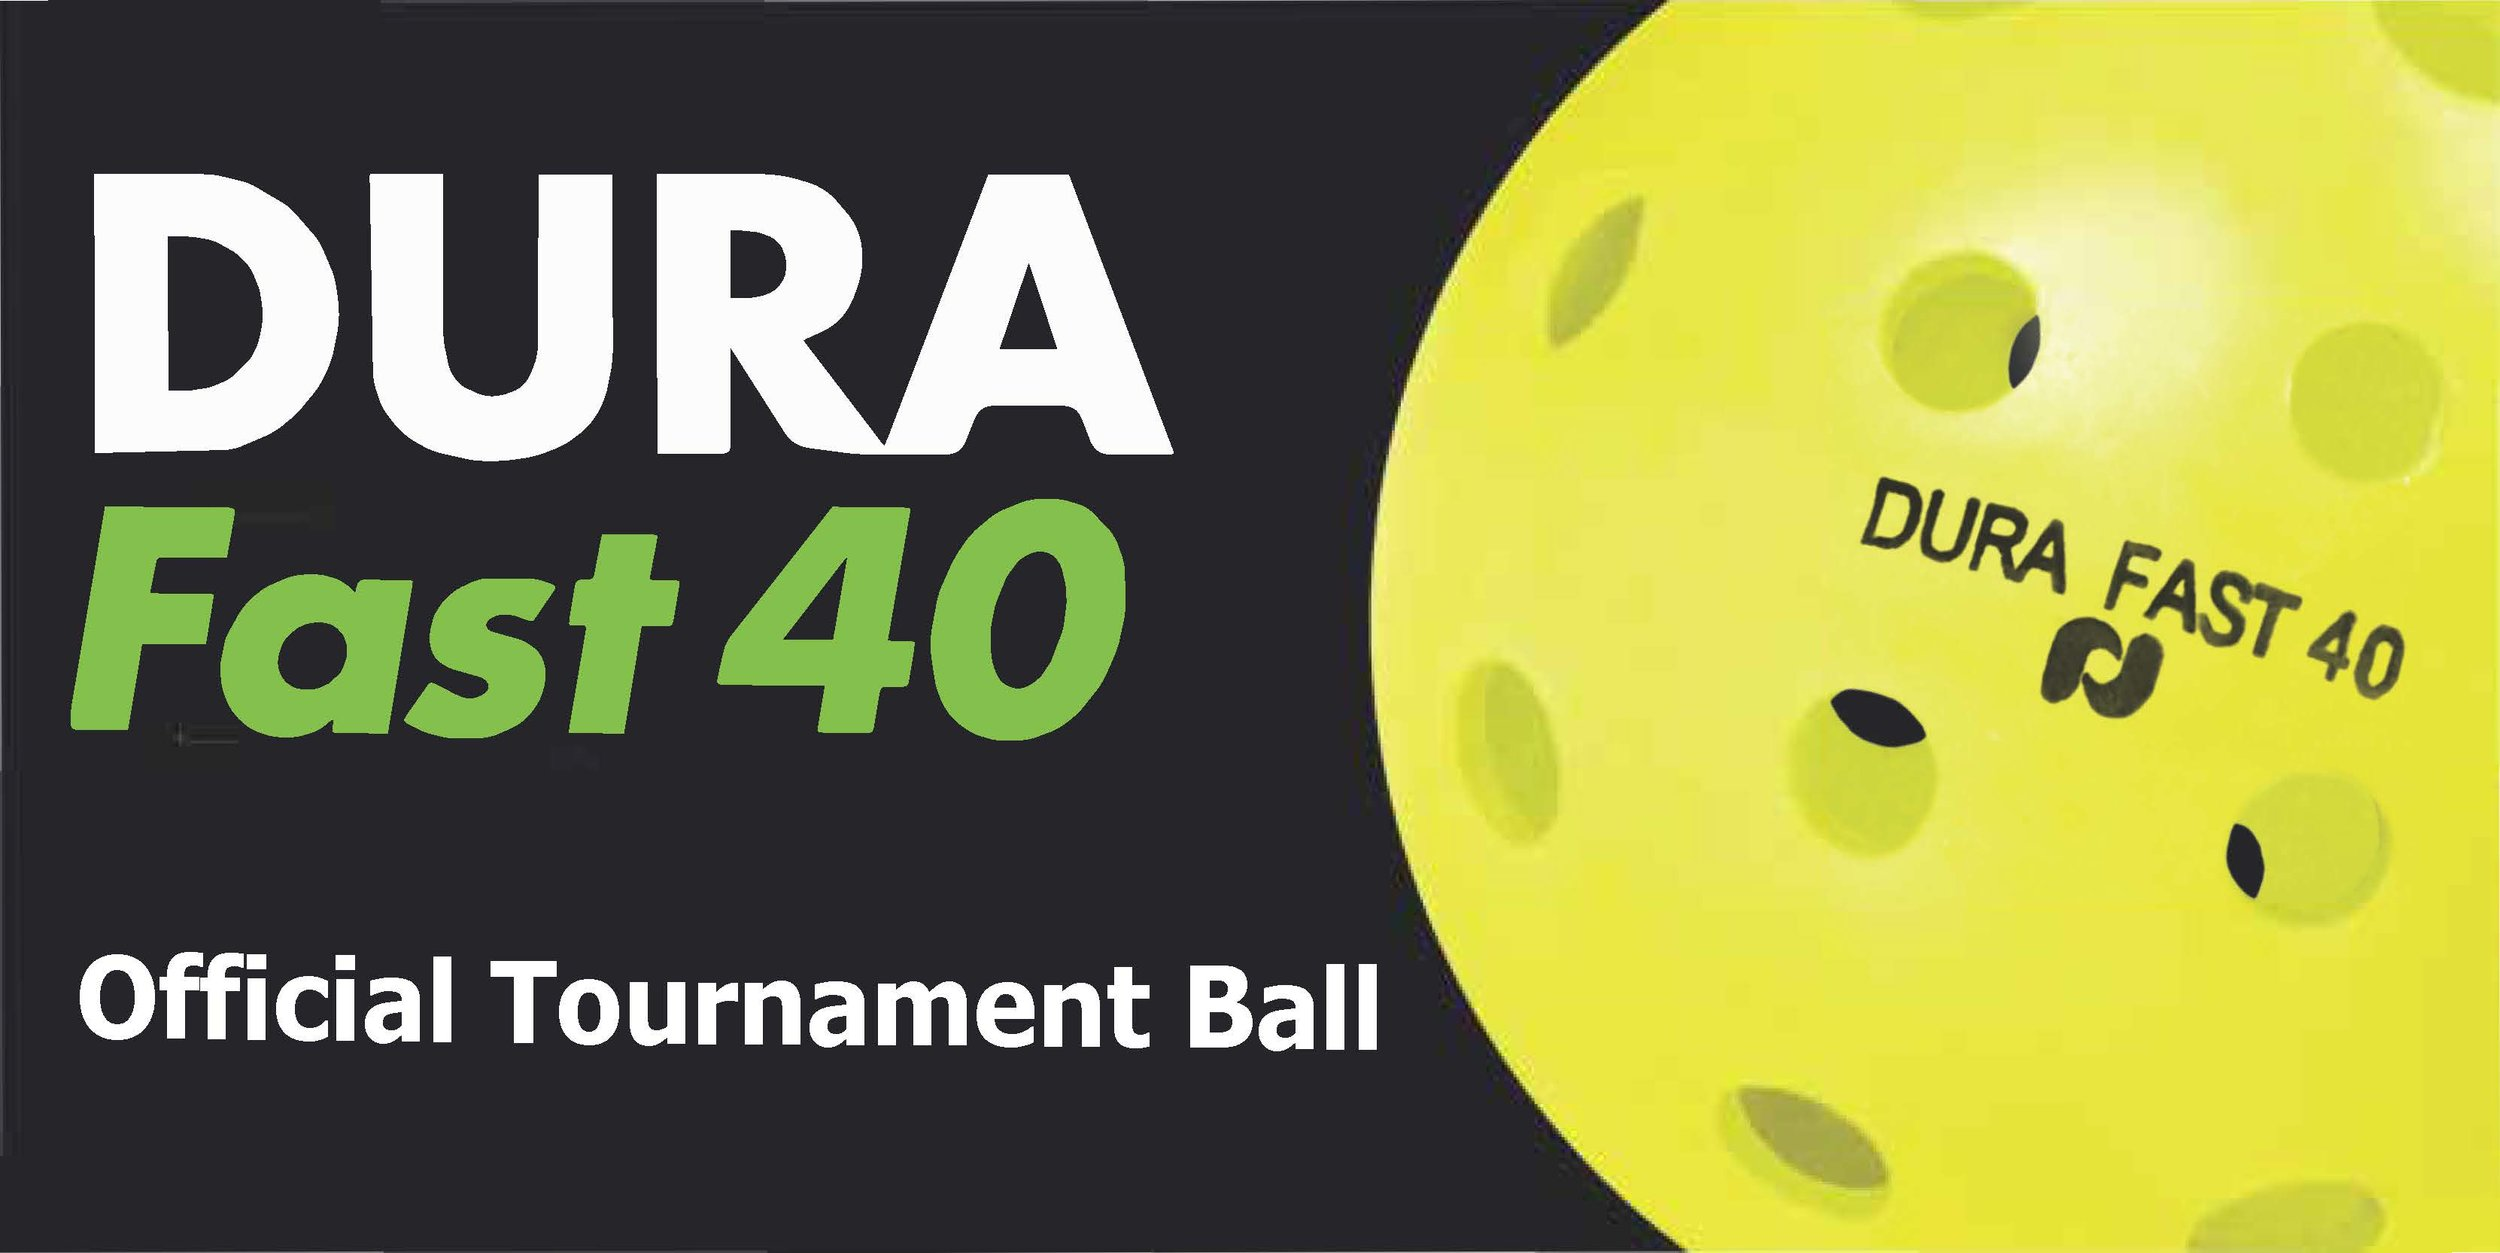 PBI Dura Official Tournament Ball Logo 400x200.jpg